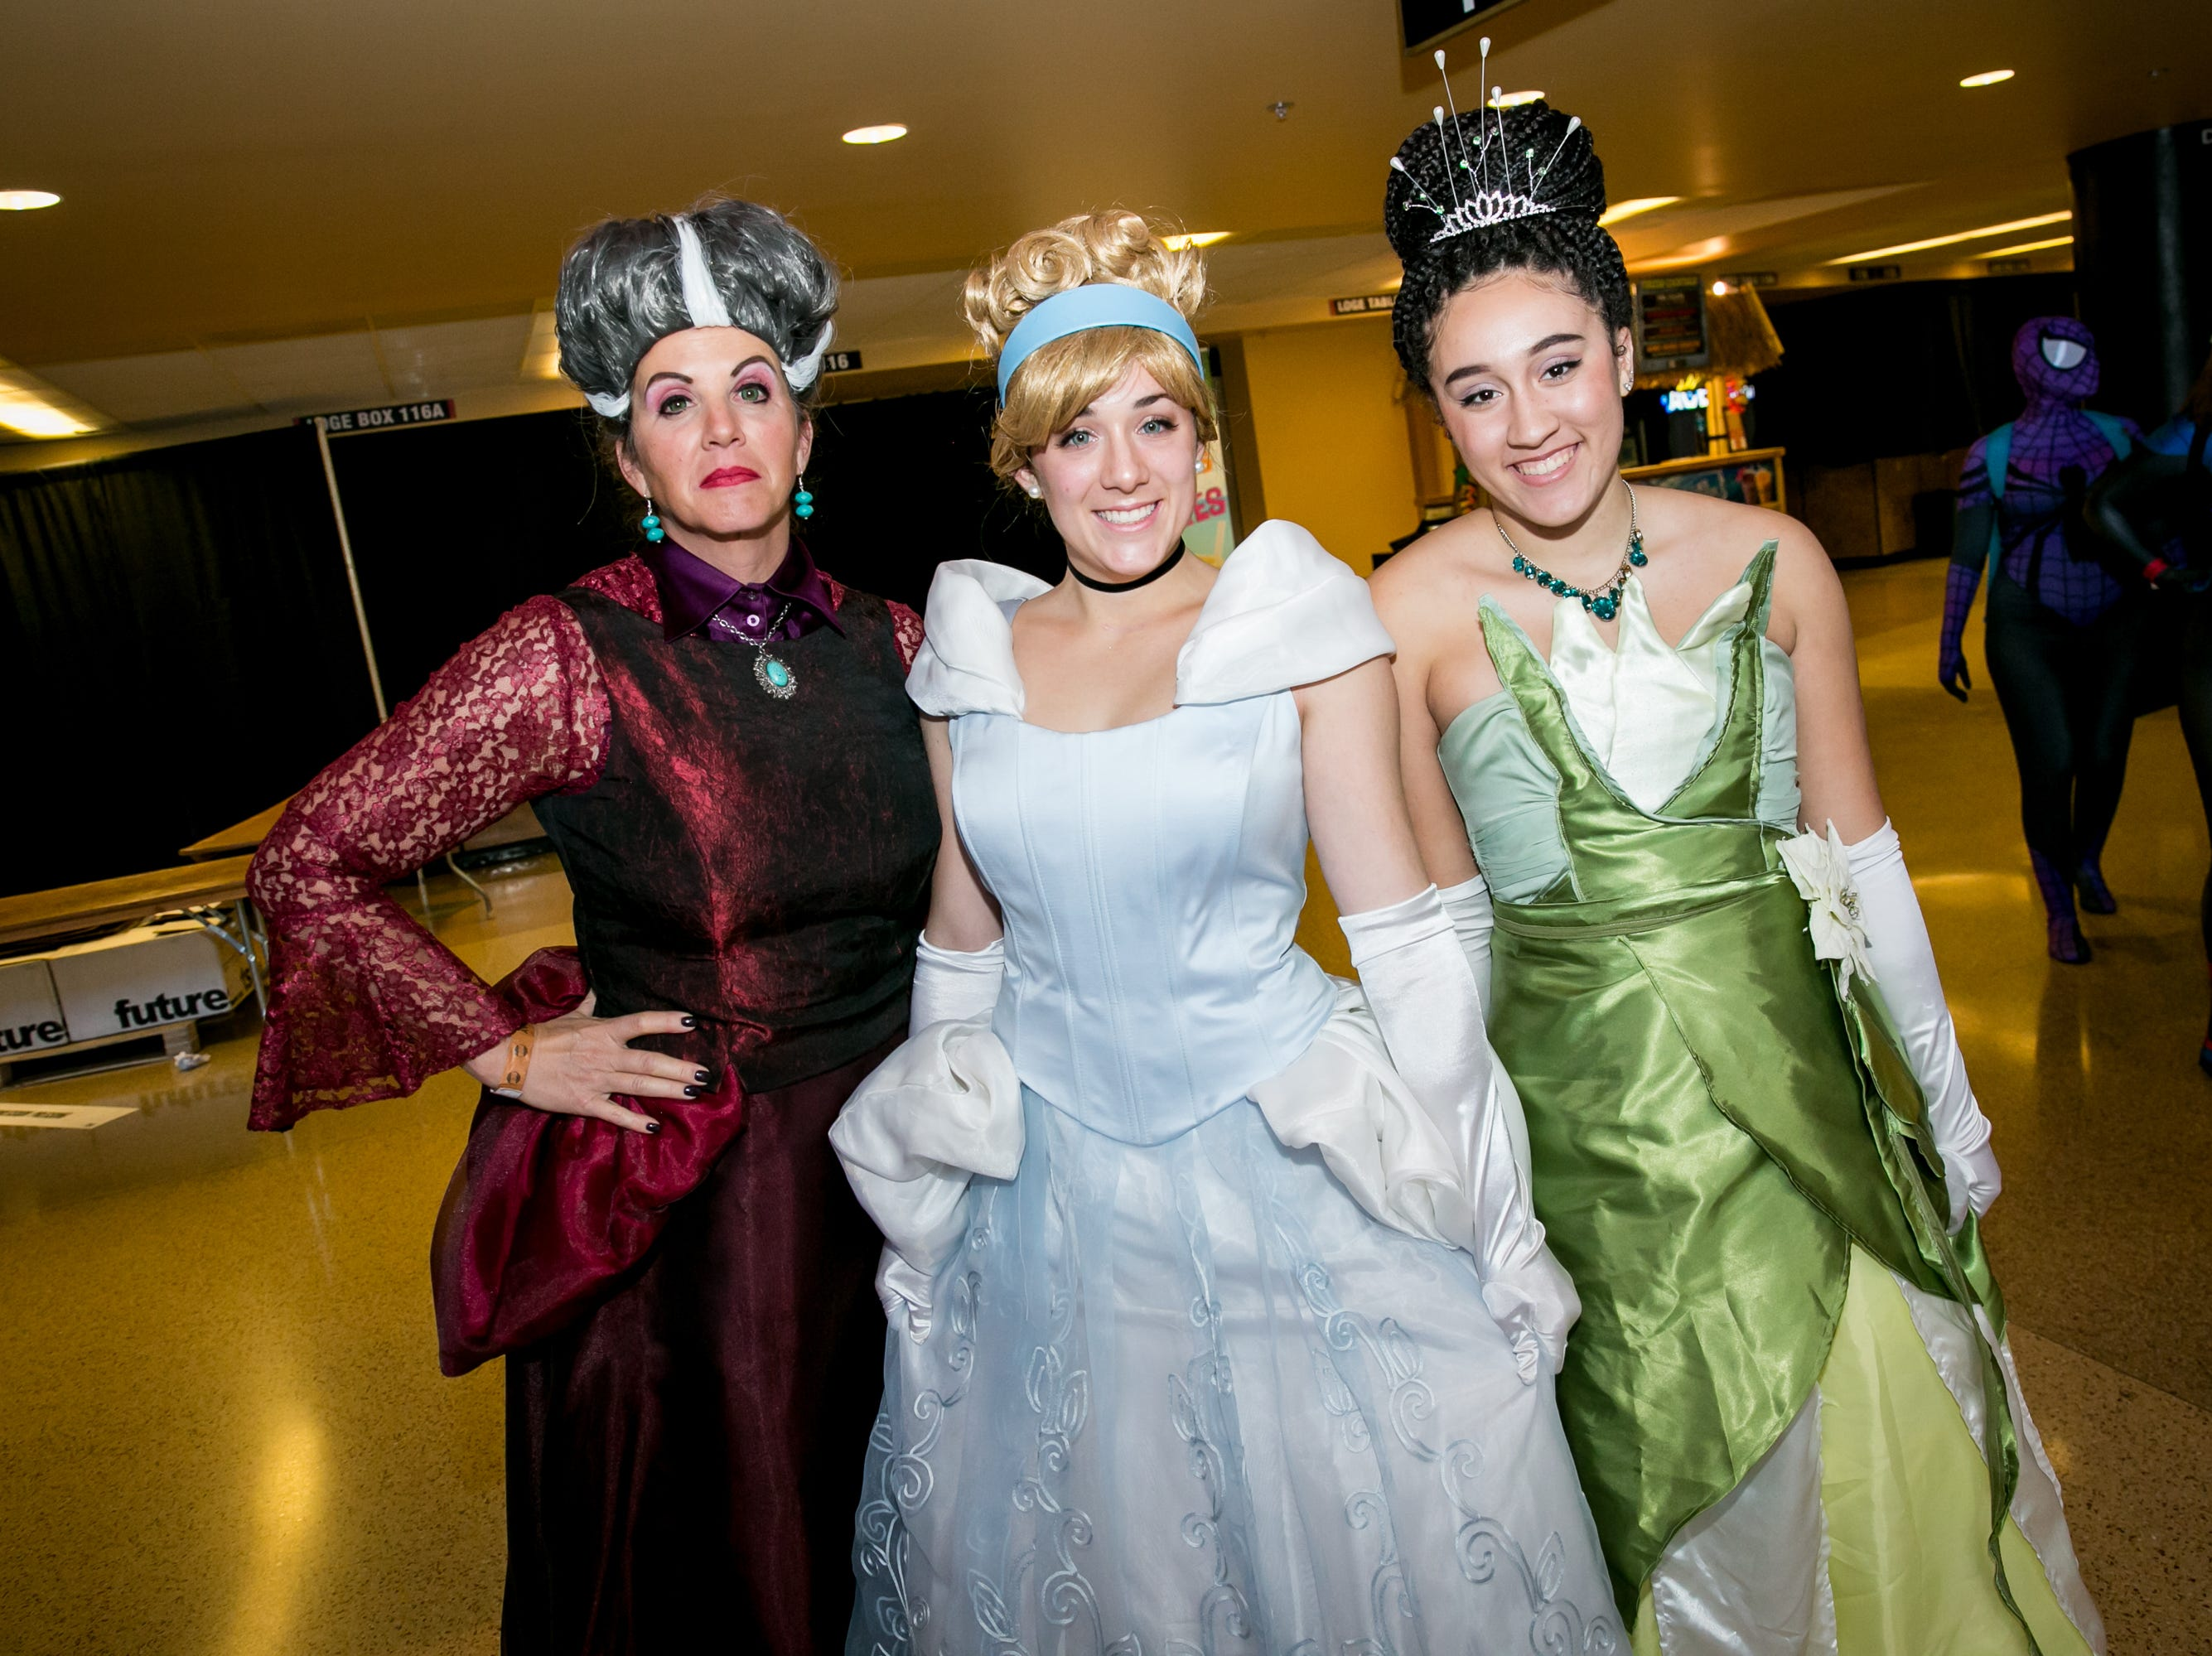 This Disney trio looked fantastic during Ace Comic Con at Gila River Arena in Glendale on Sunday, Jan. 13, 2019.